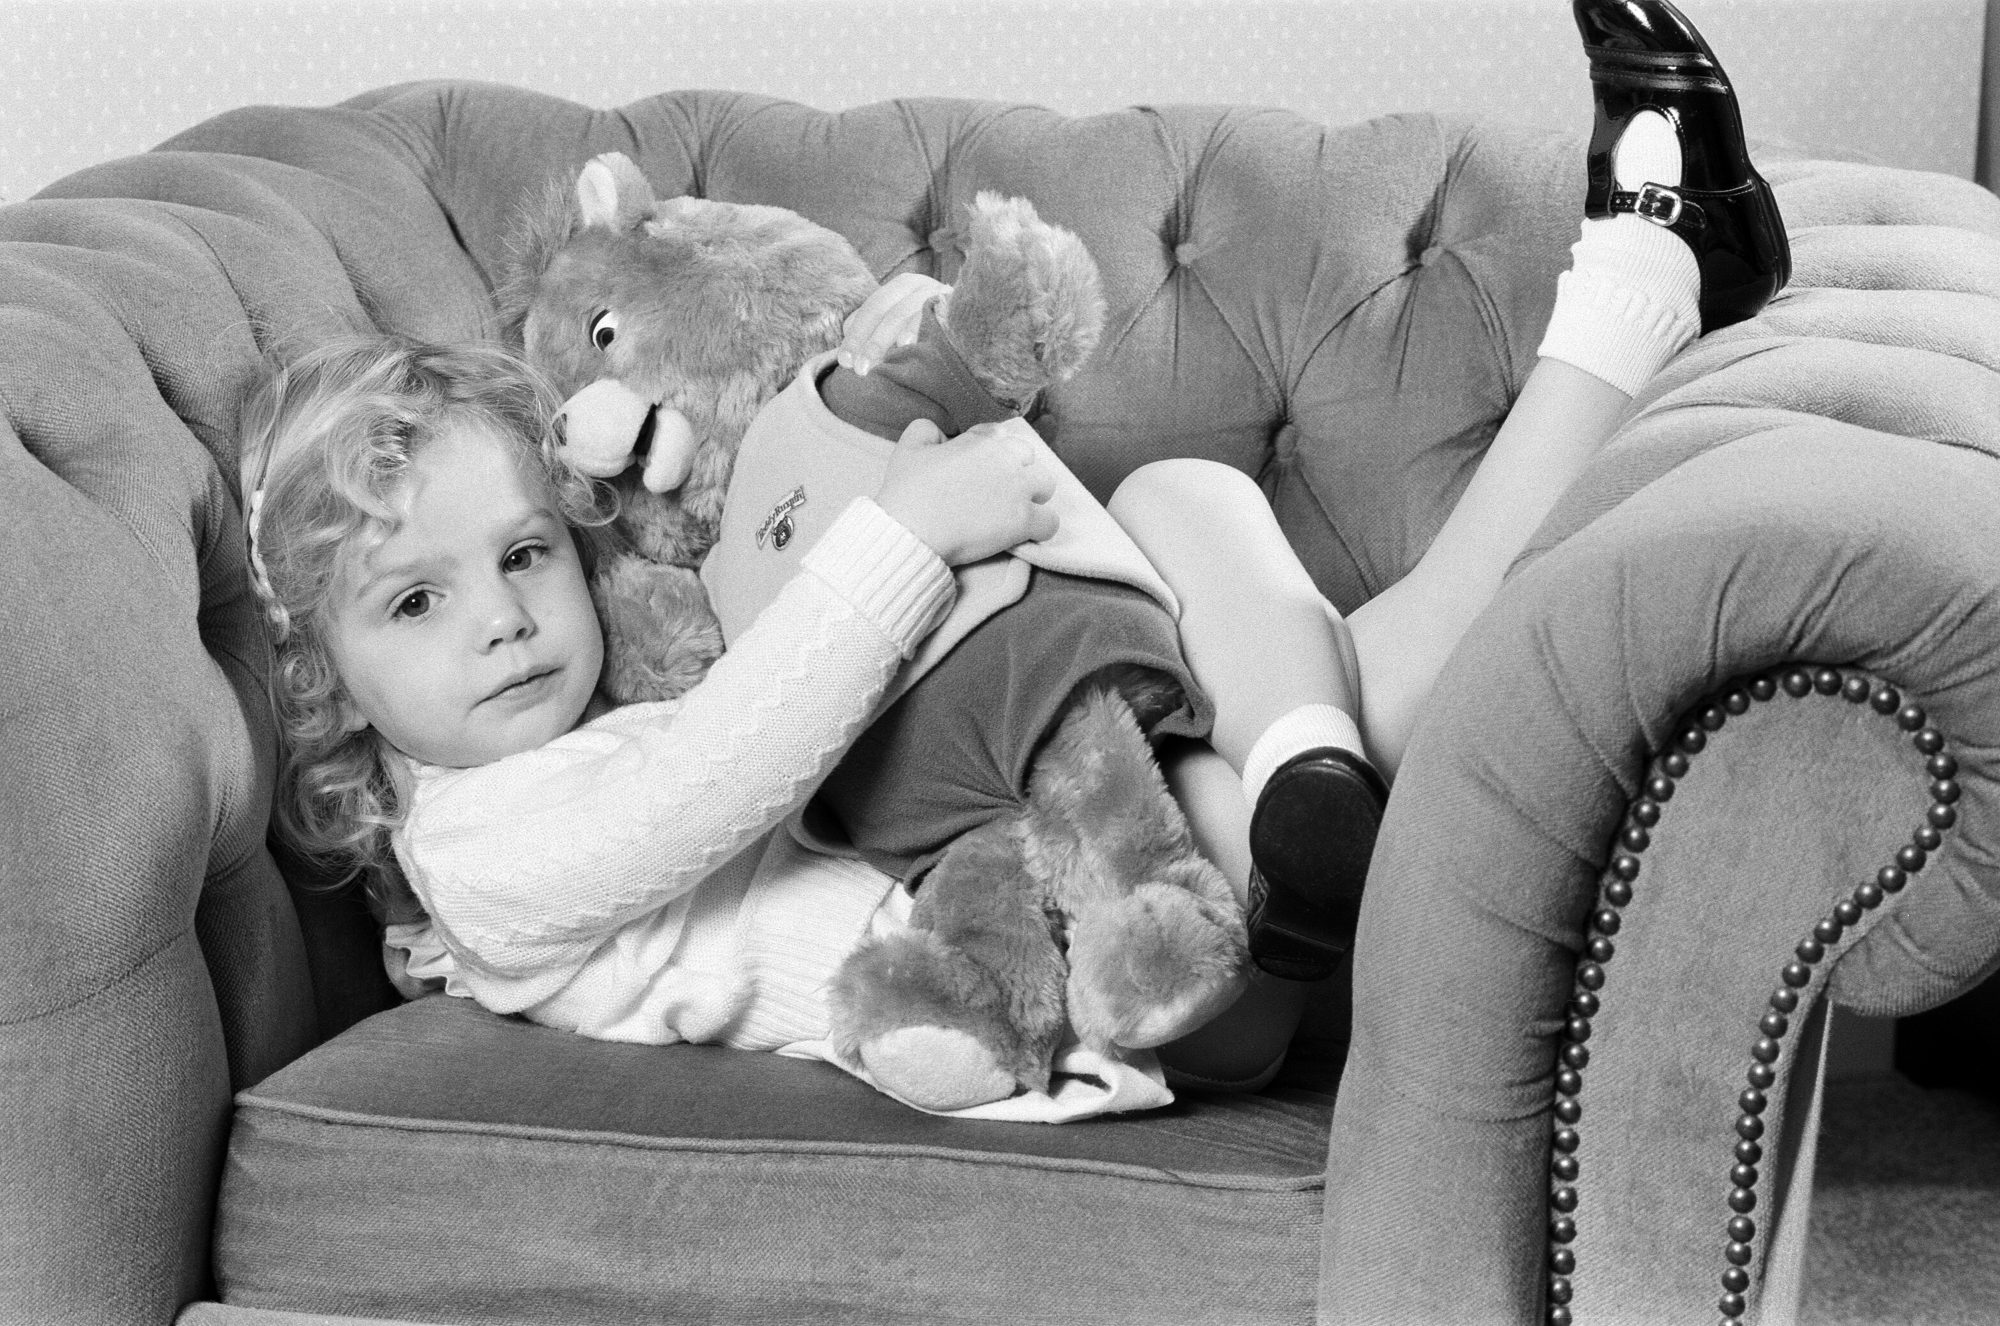 Girl Holding Teddy Ruxpin Bear